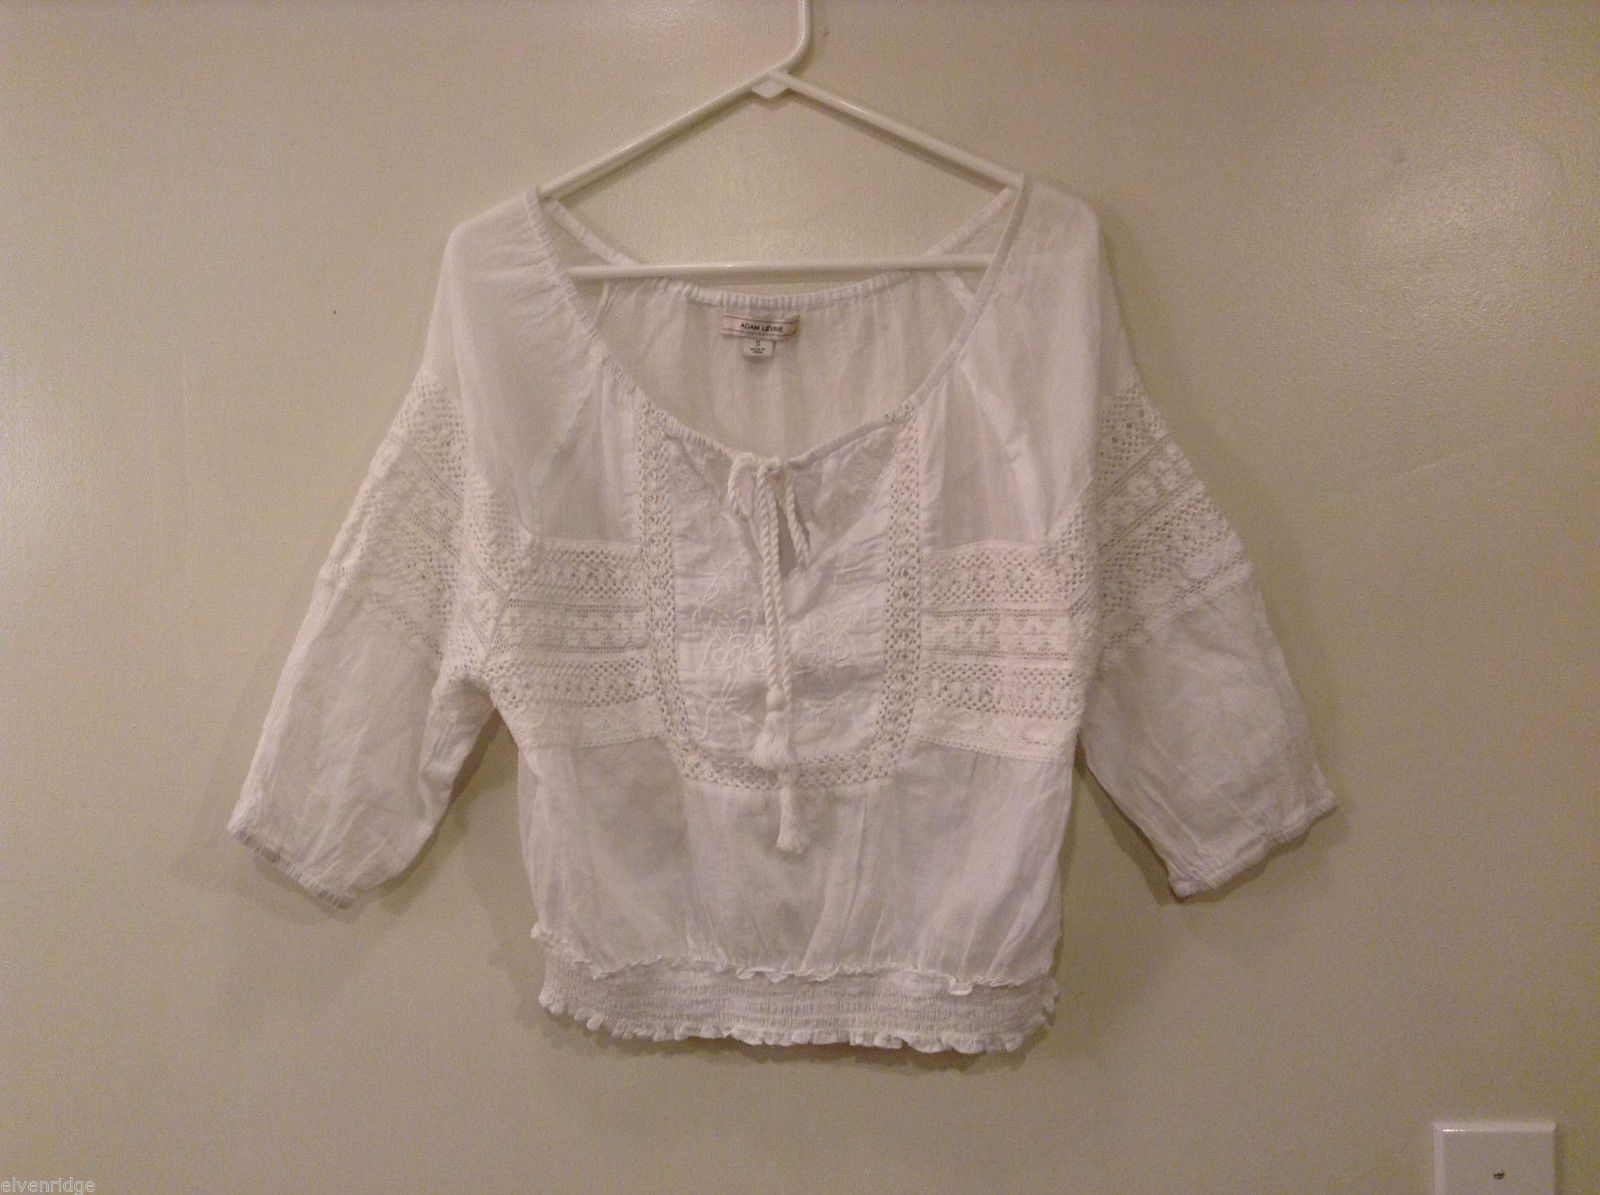 Adam Levine White 100% cotton embroidery blouse boat neck 3/4 sleeve Size small.